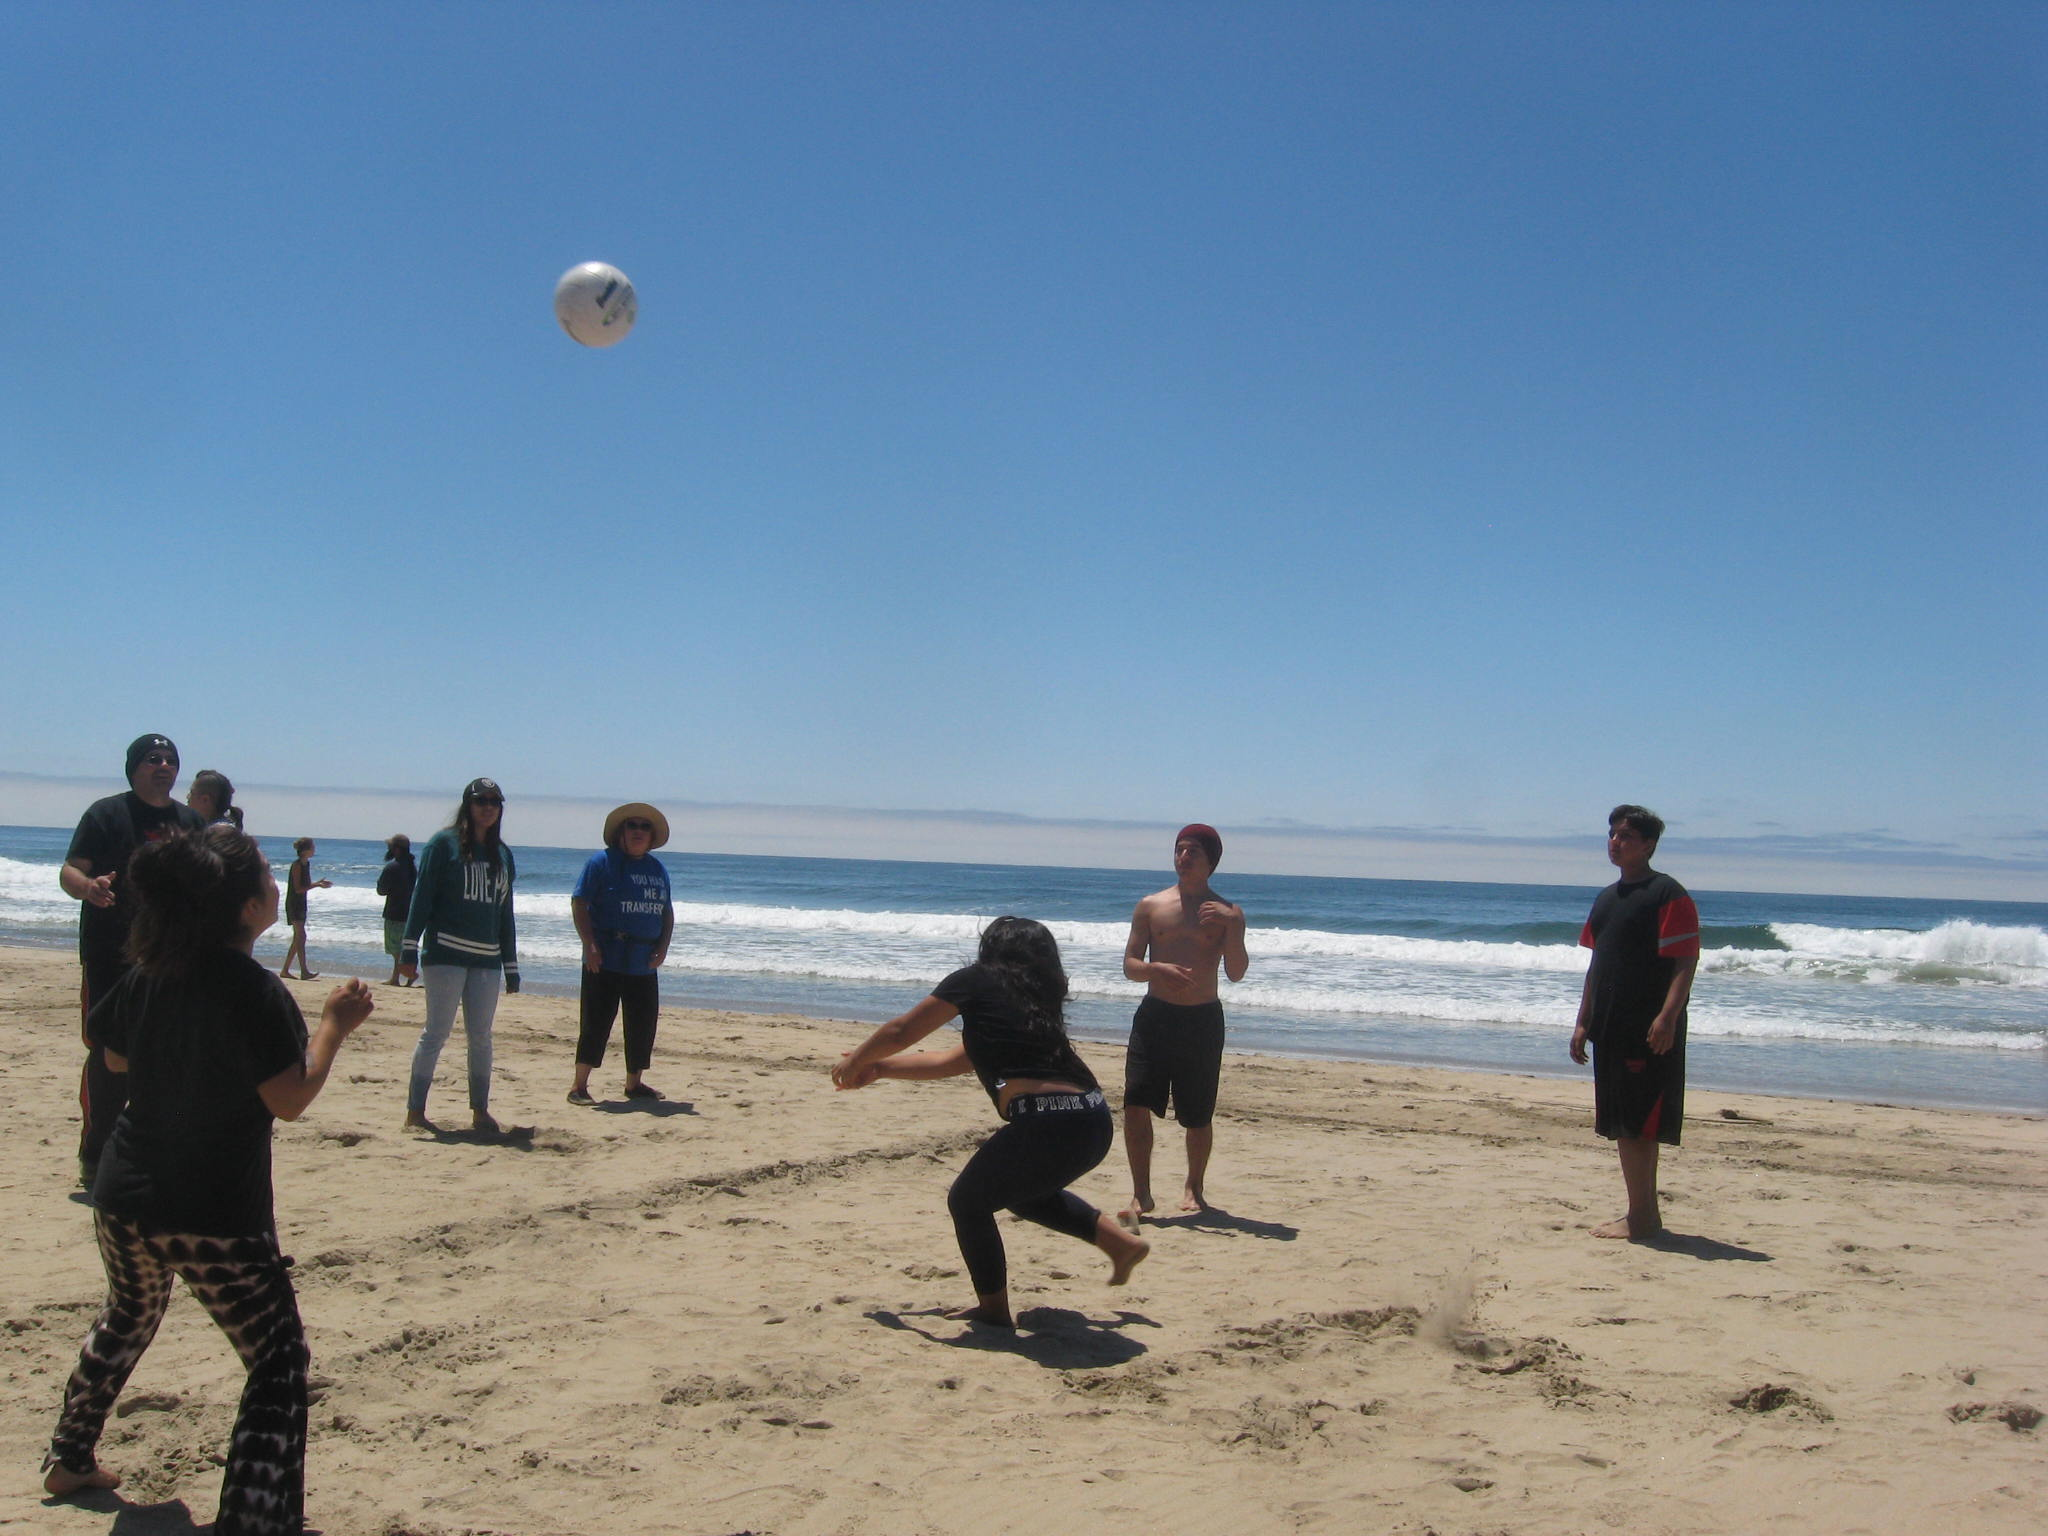 Campers get competitive in improvised beach volleyball. Photo courtesy Jay Scherf.